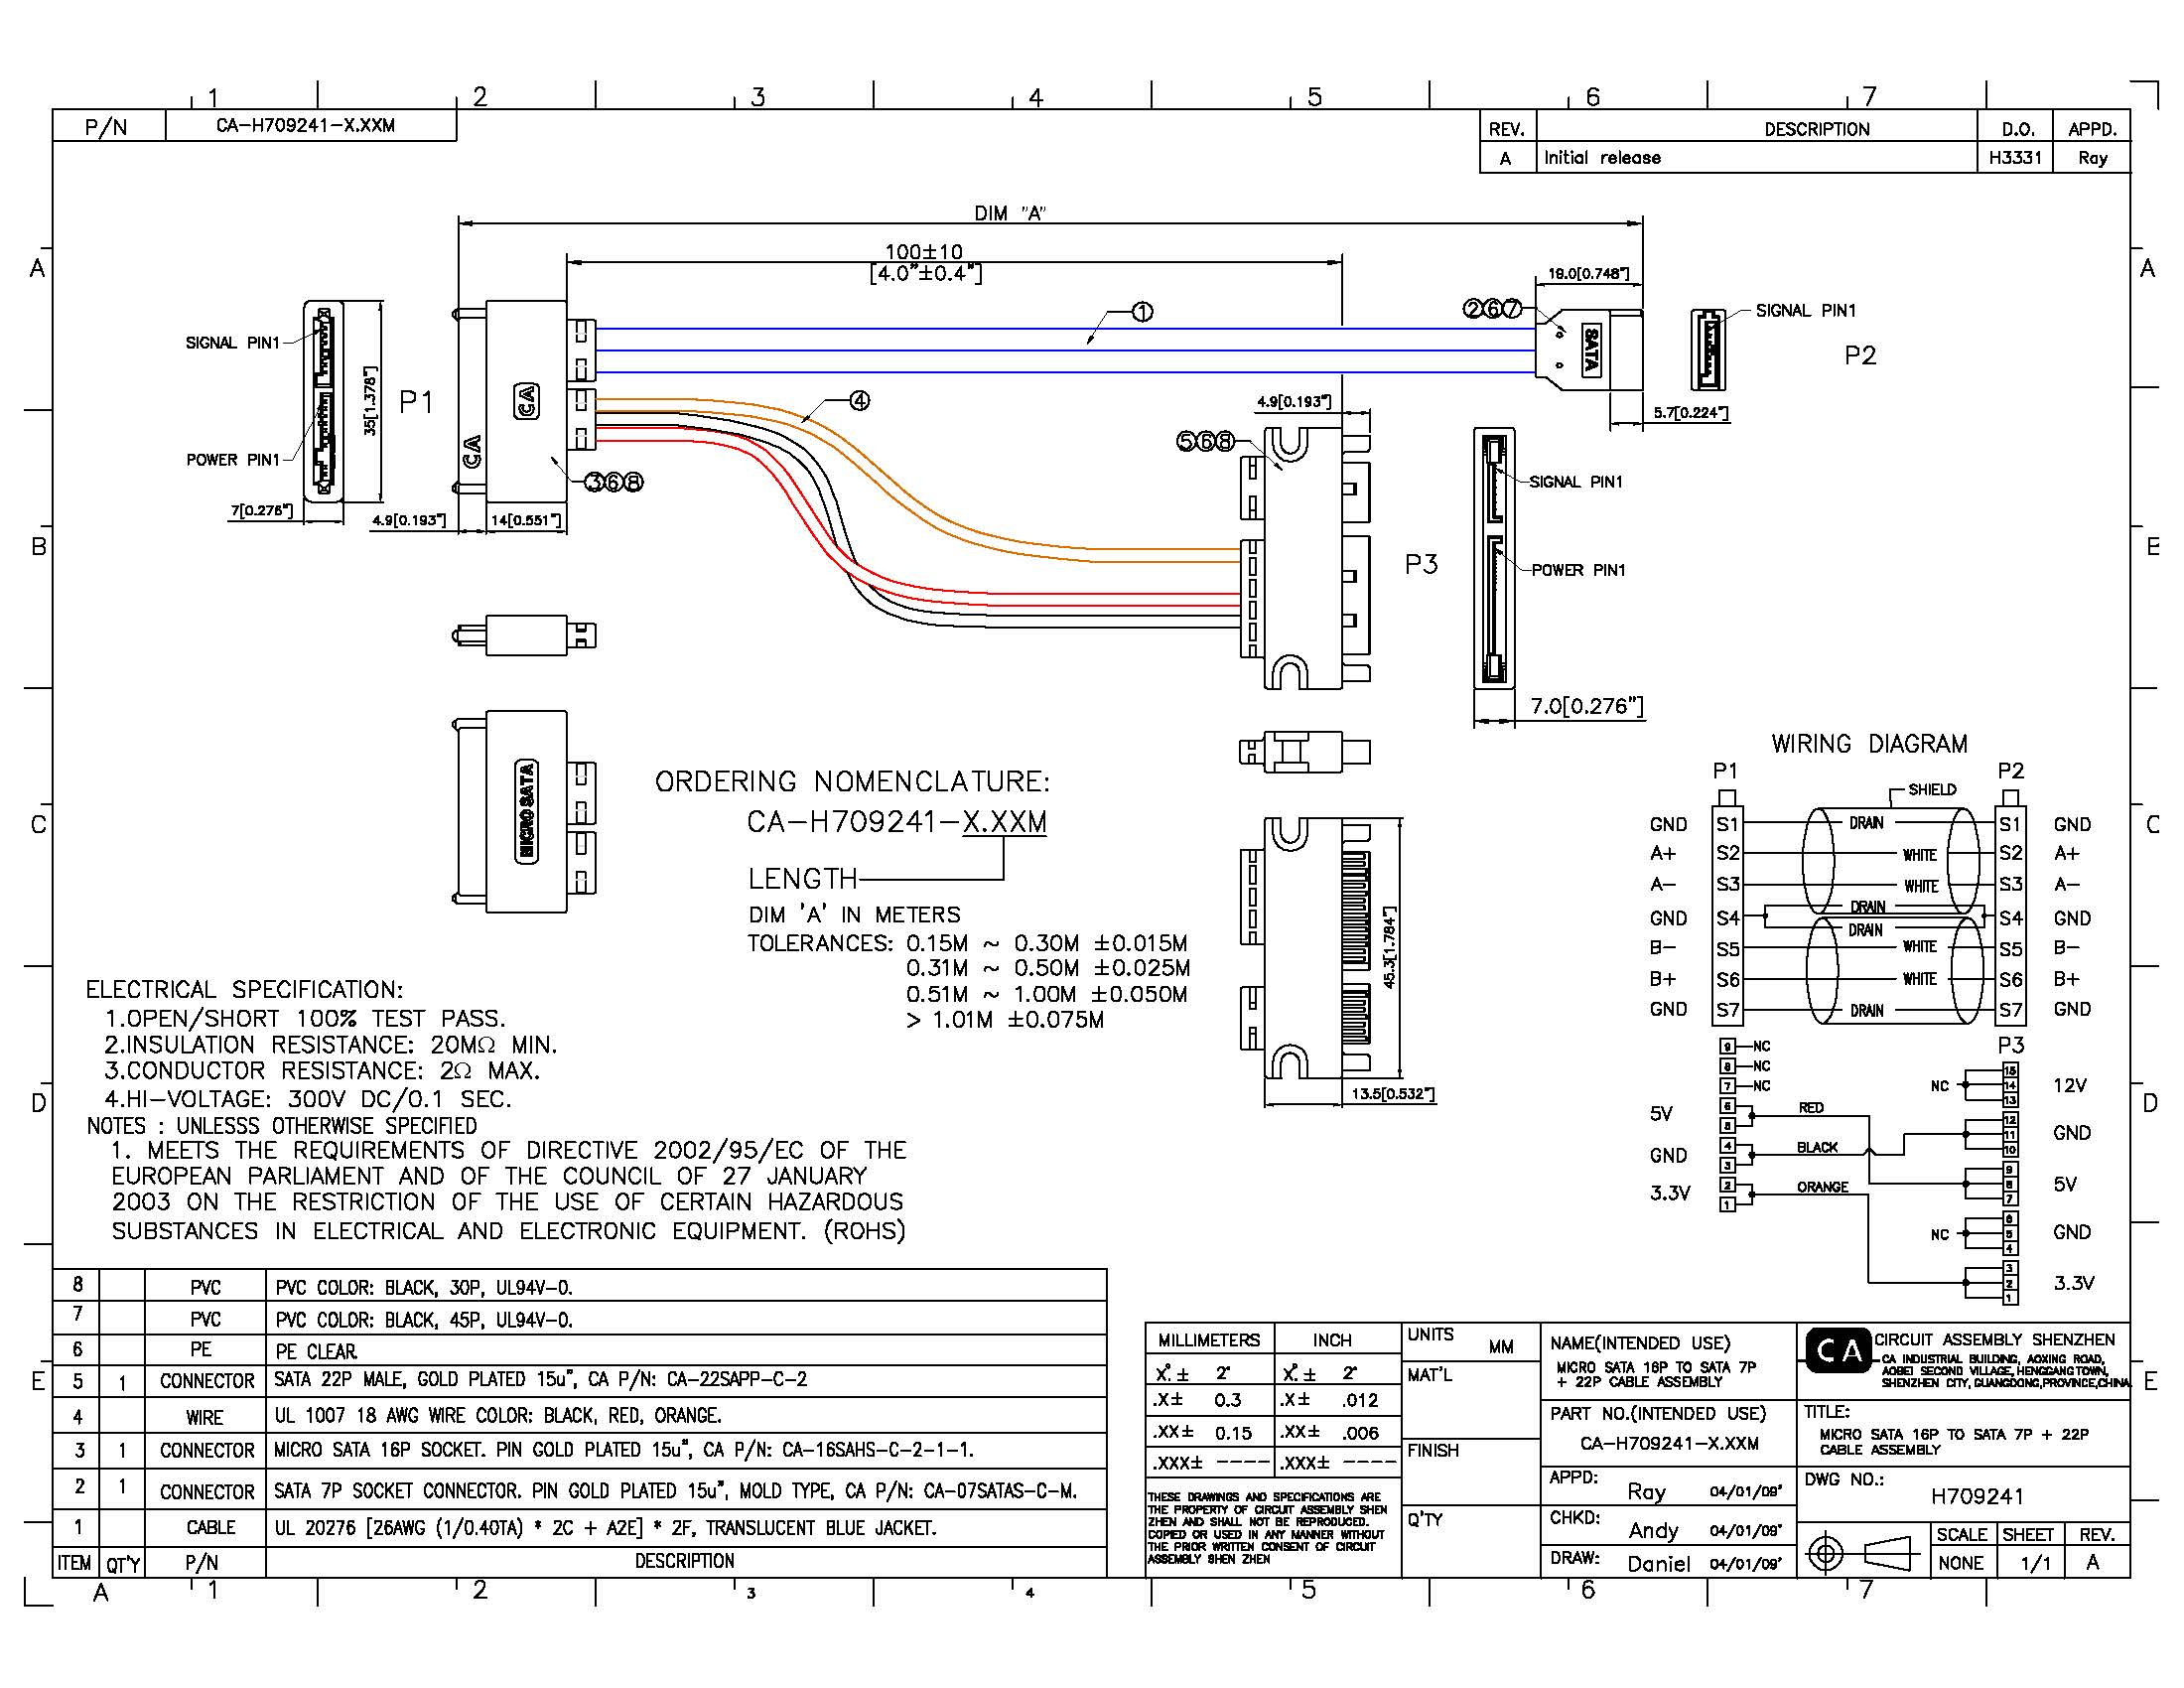 7 Pin Usb Wiring Schematic | Wiring Diagram - Sata Data Cable To Usb Wiring Diagram